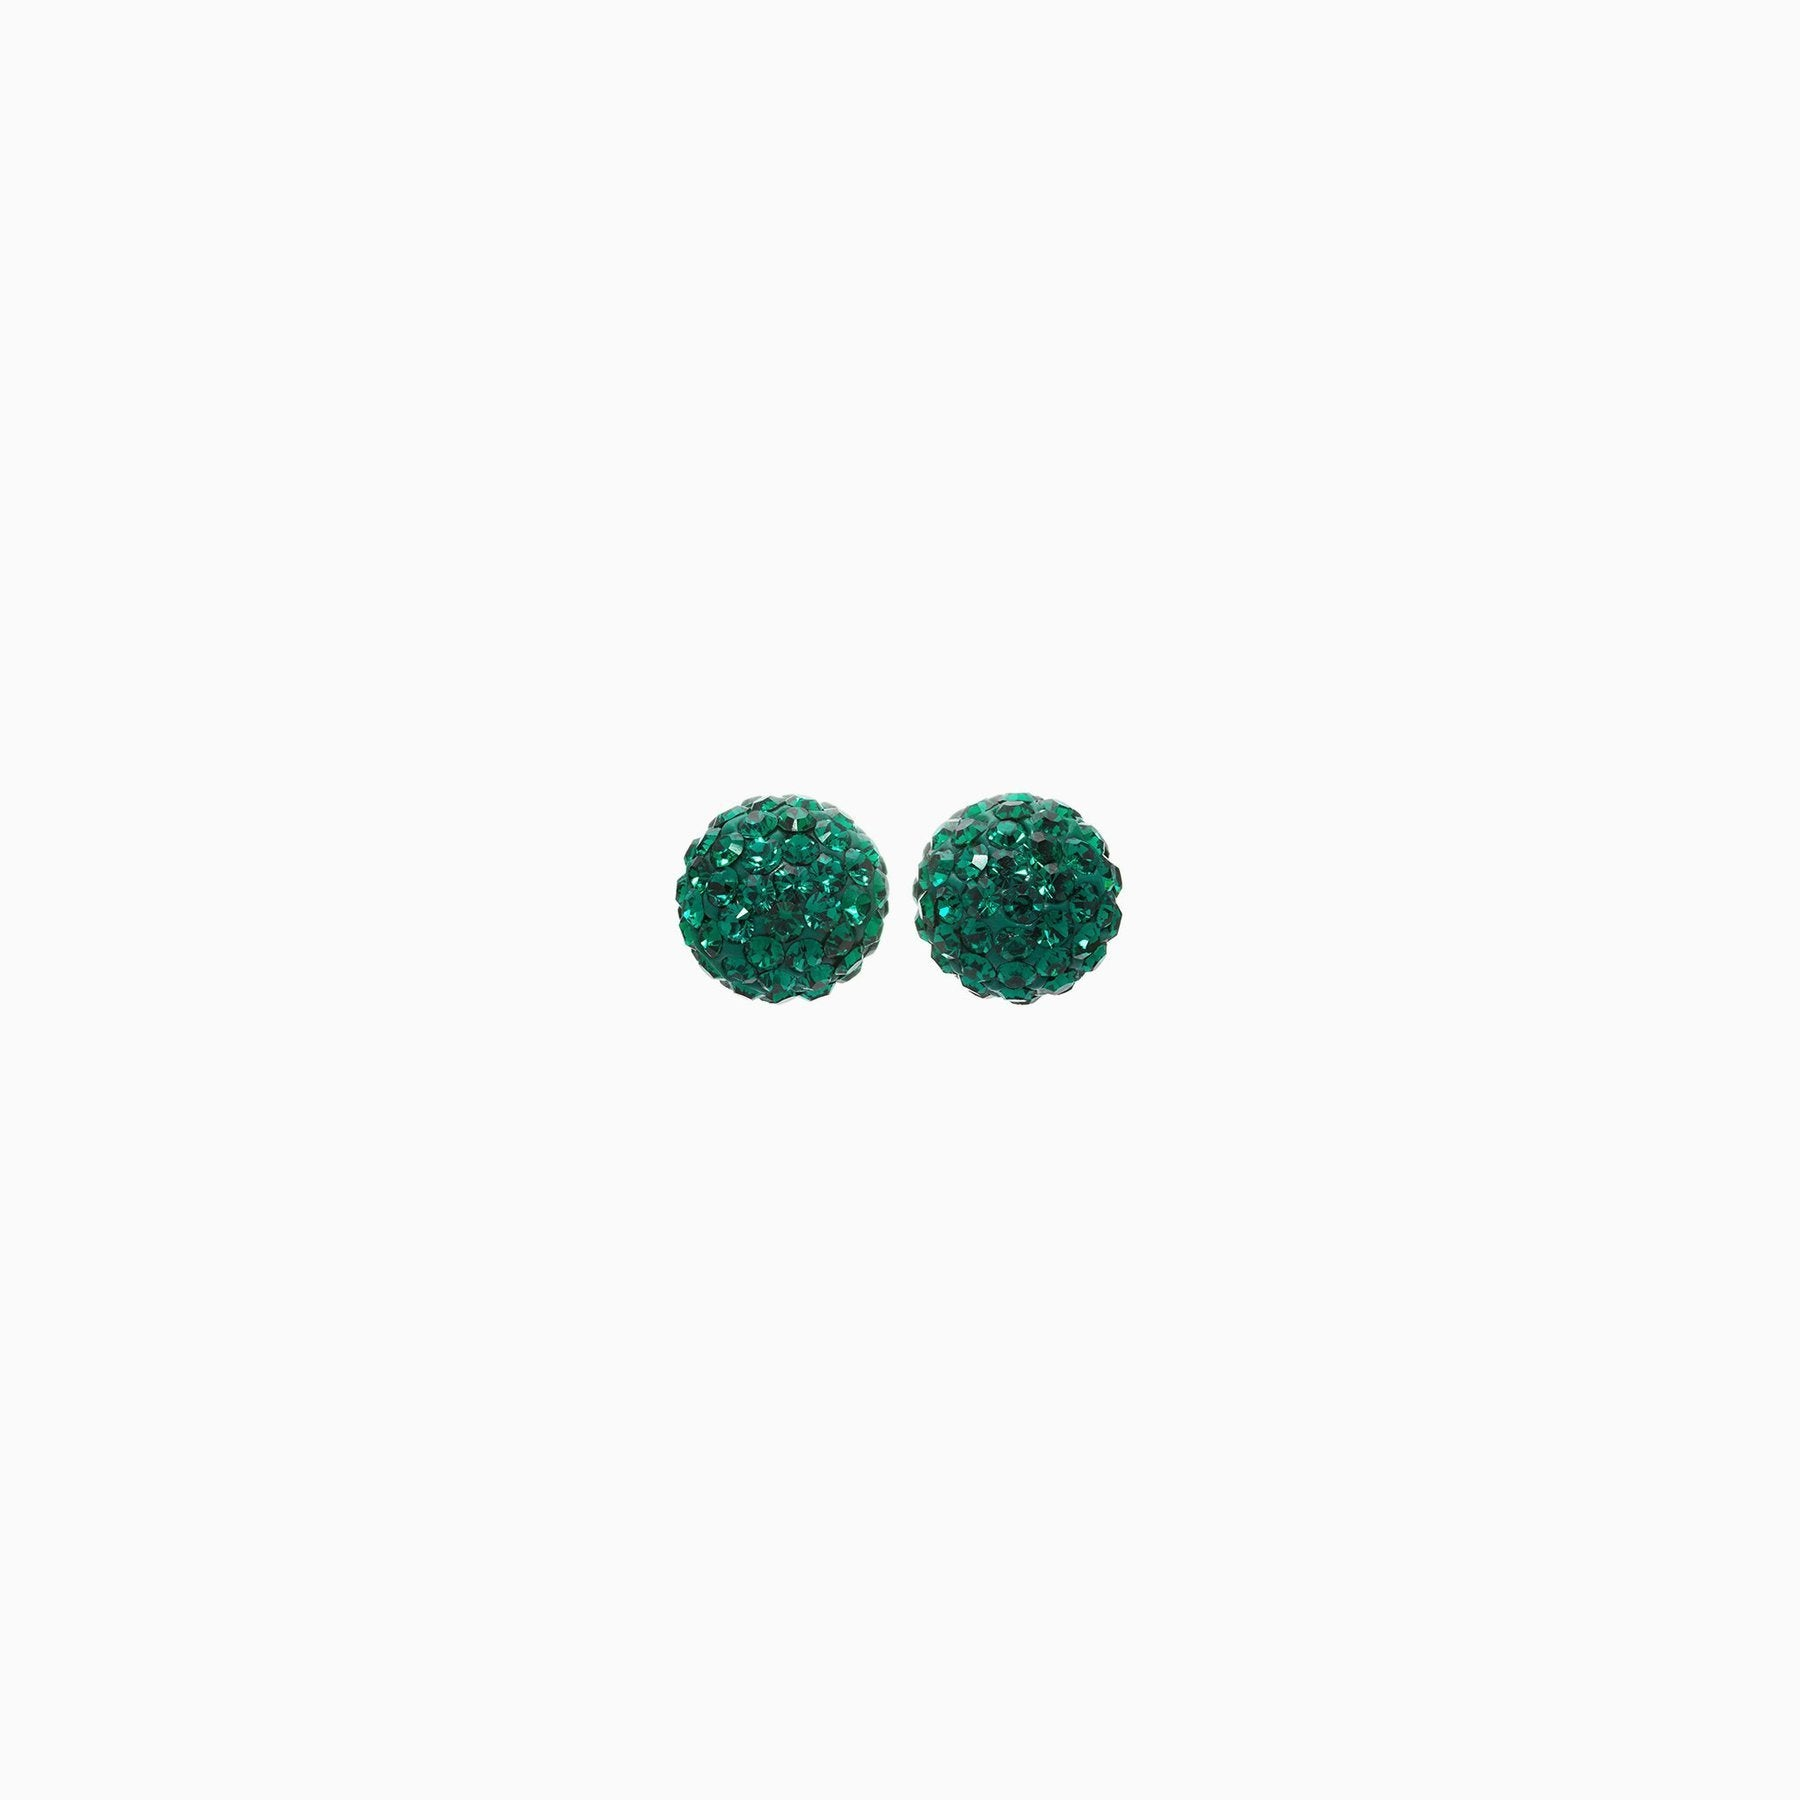 H&B Sparkle Ball™ Stud Earrings - 8mm Emerald